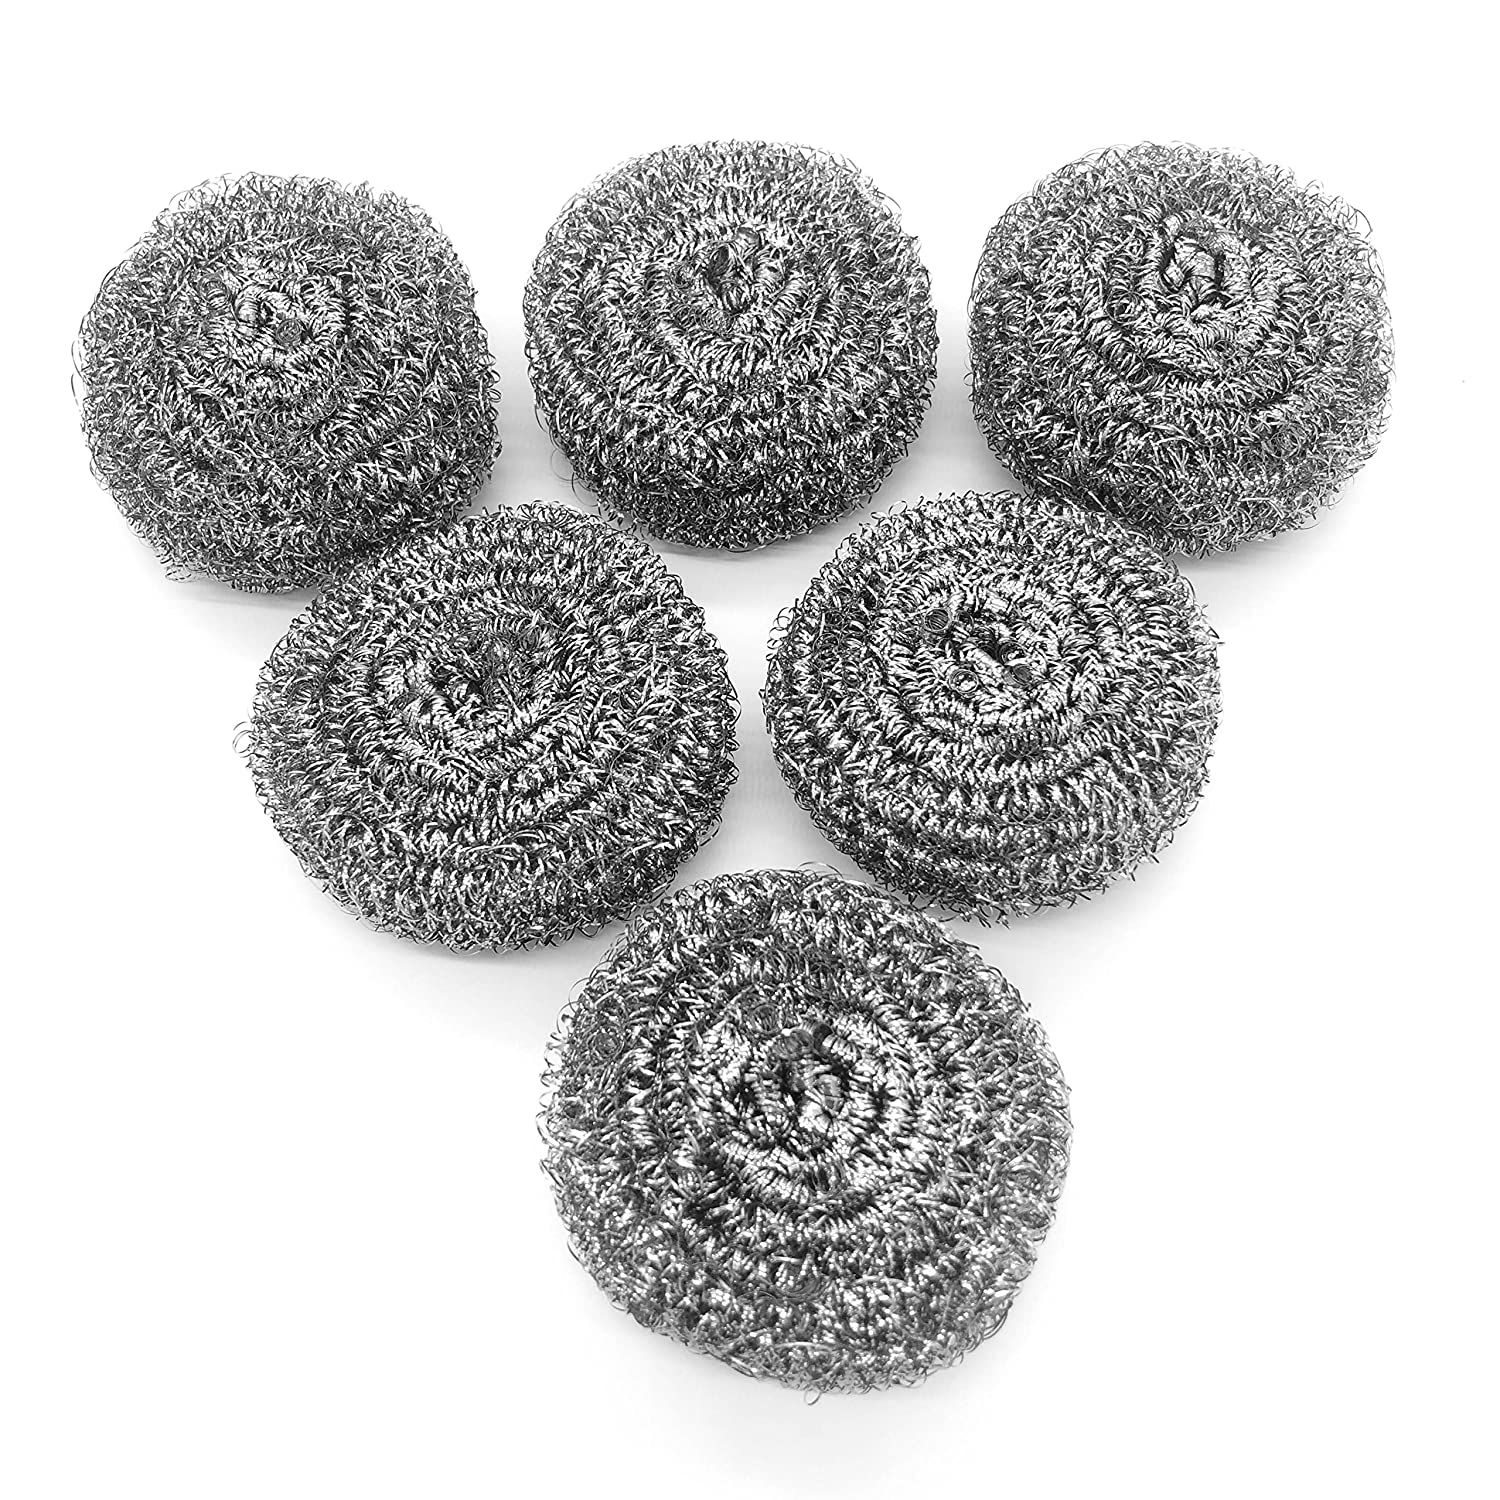 6 Pack Stainless Steel Sponges, Scrubbing Scouring Pad, Steel Wool Scrubber for Kitchens, Bathroom and More : Health & Household